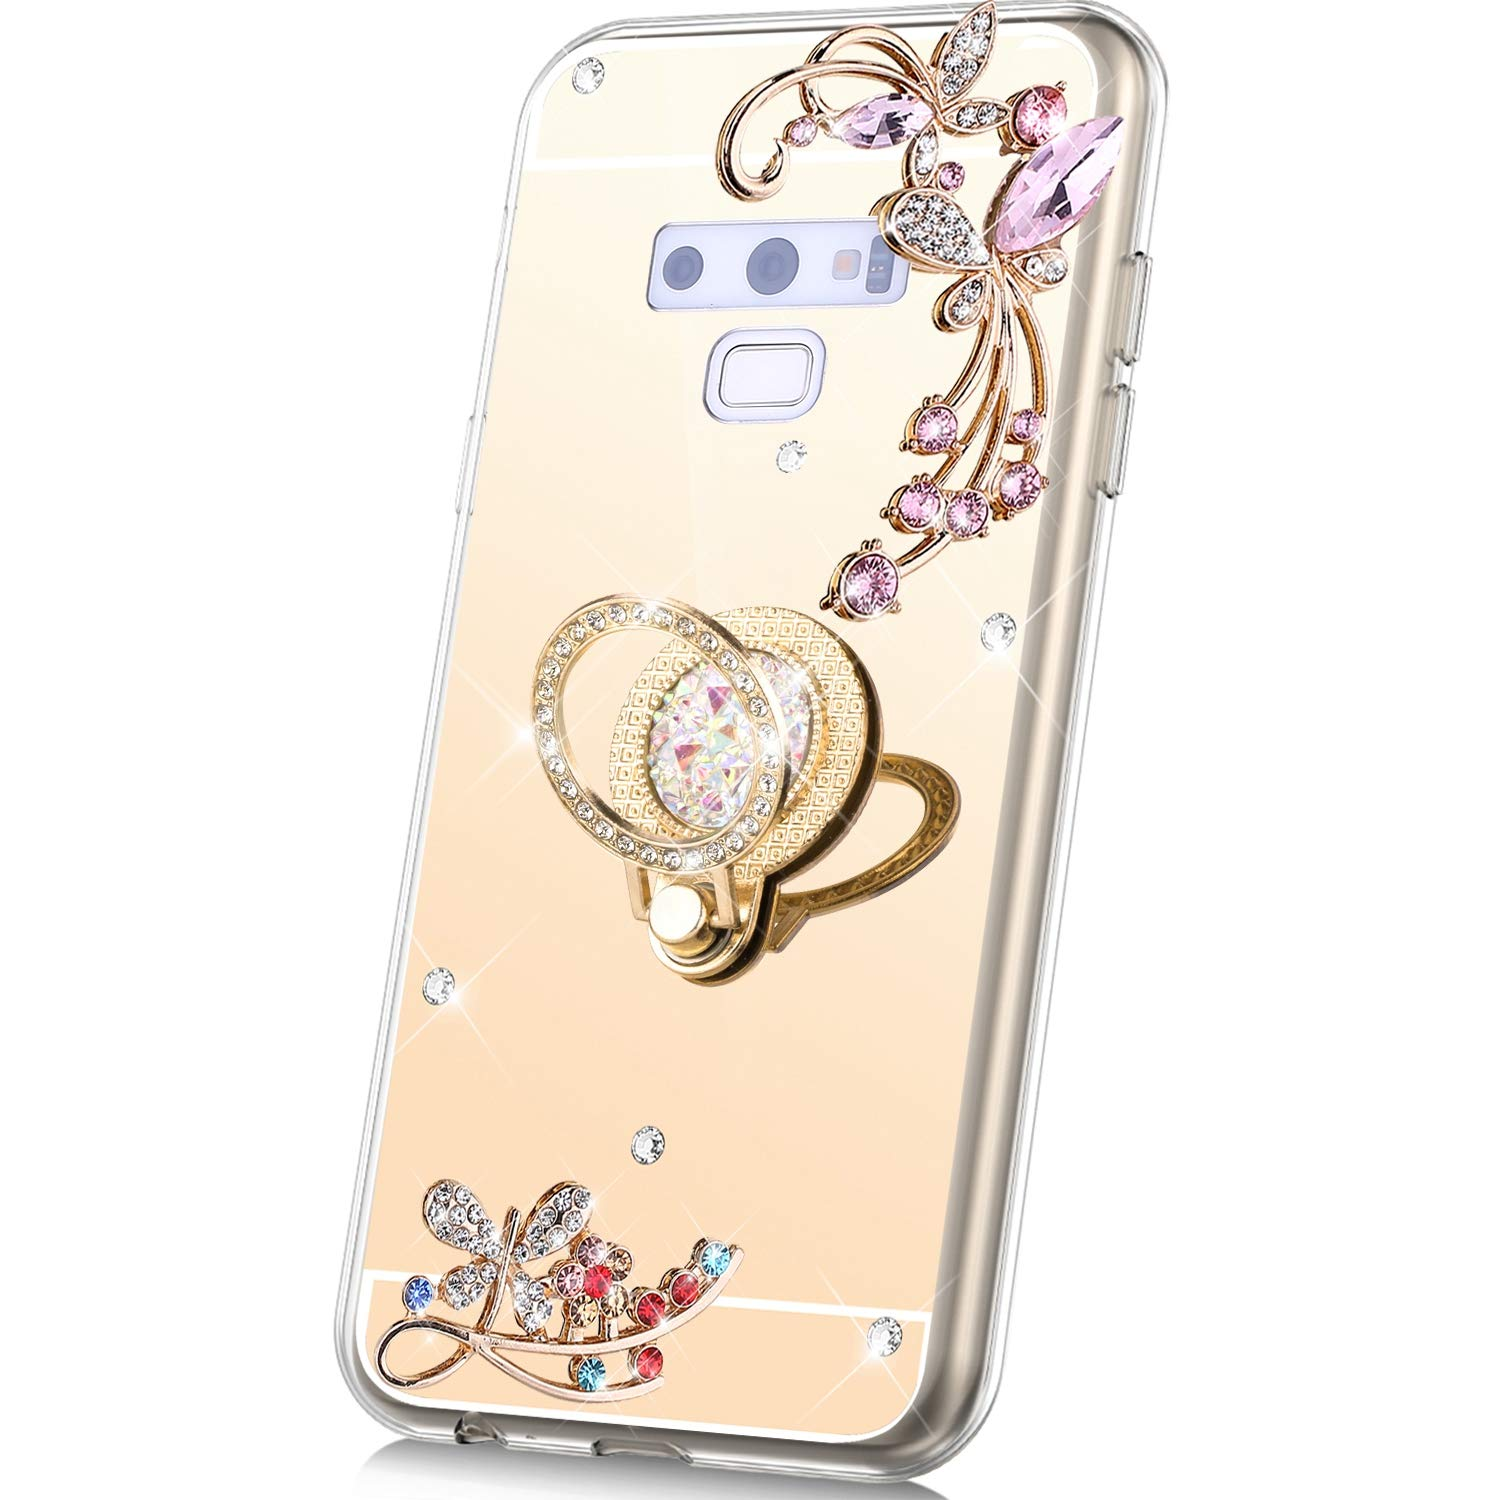 PHEZEN Case for Samsung Galaxy Note 9 Mirror Case,Bling Glitter Flowers Sparkle Rhinestone Mirror Back TPU Silicone Case Cover with Ring Kickstand Diamond Crystal Case for Galaxy Note 9,Gold by PHEZEN